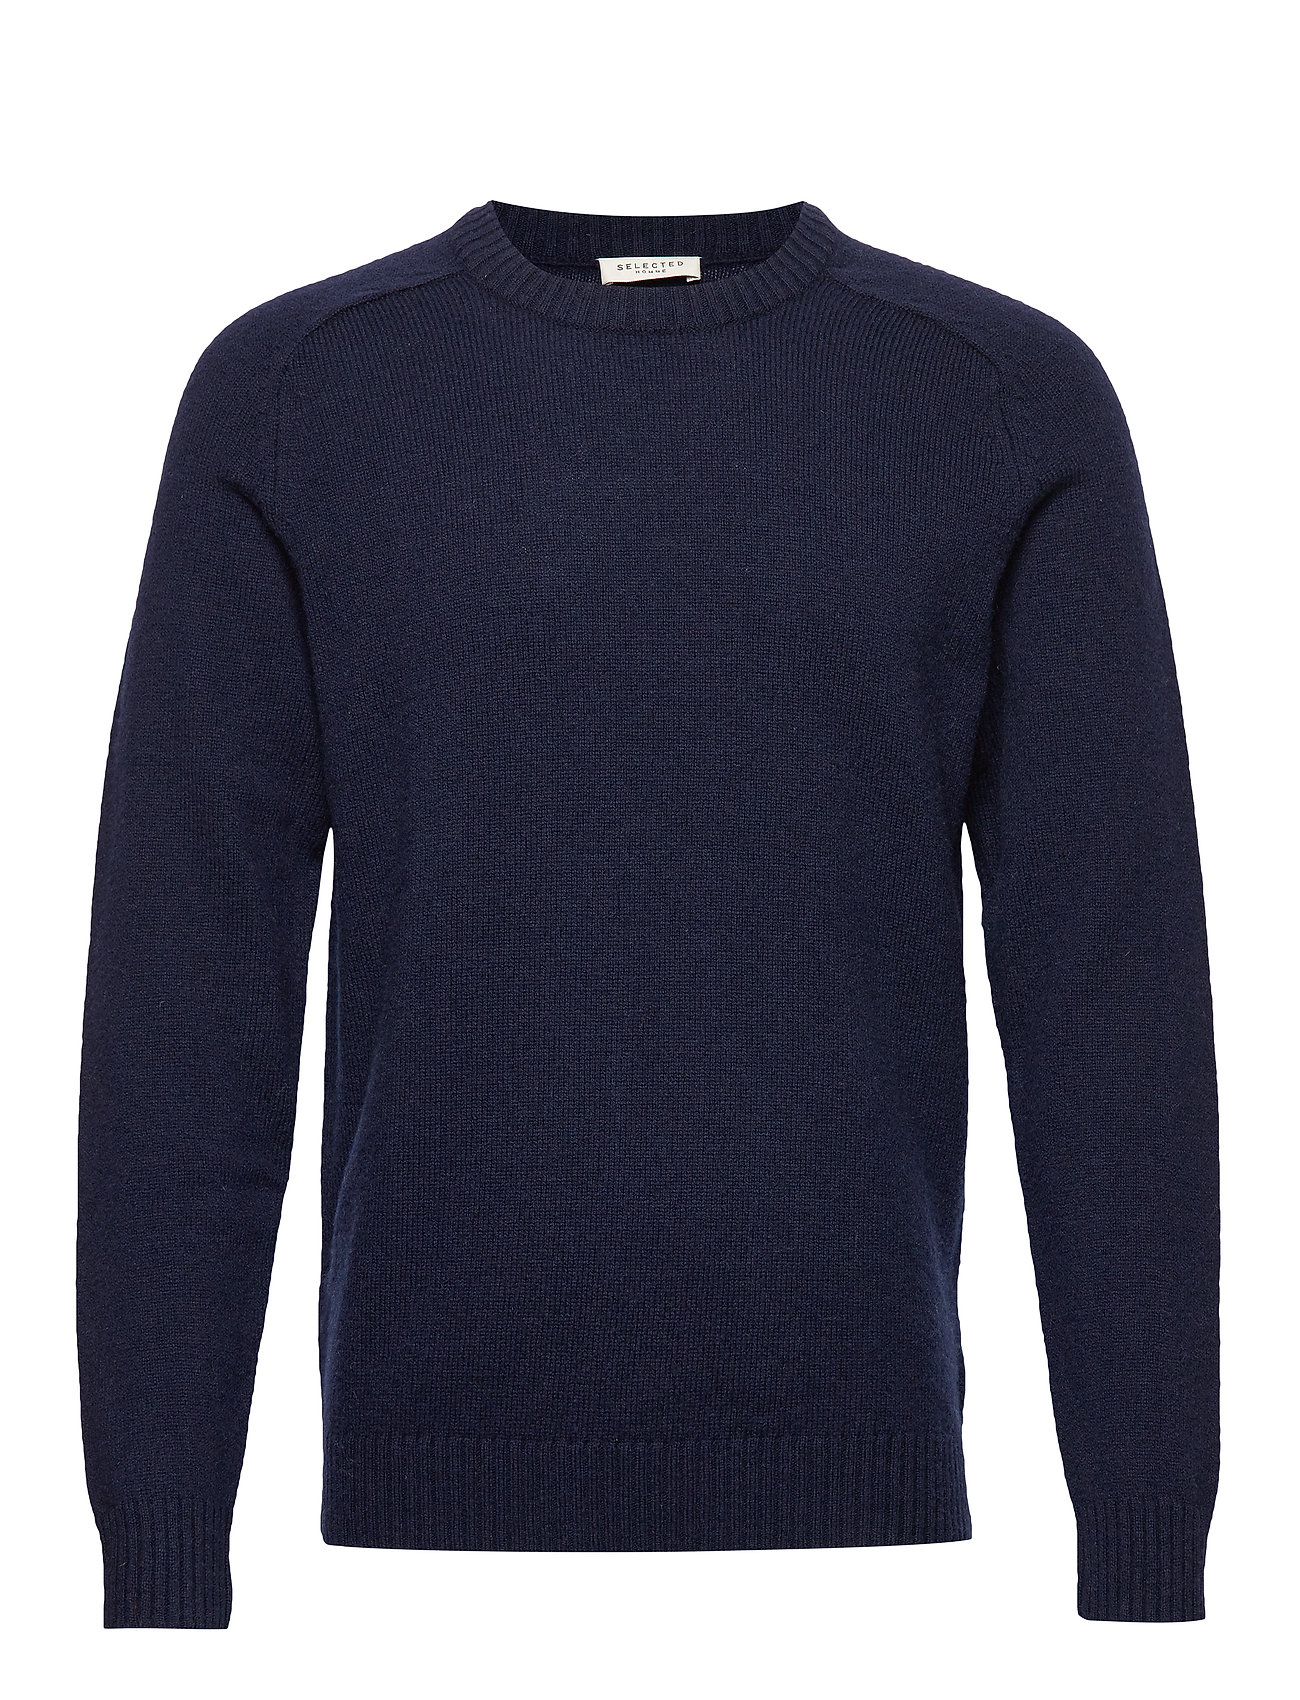 Selected Homme SLHNEWCOBAN WOOL CREW NECK W - SKY CAPTAIN